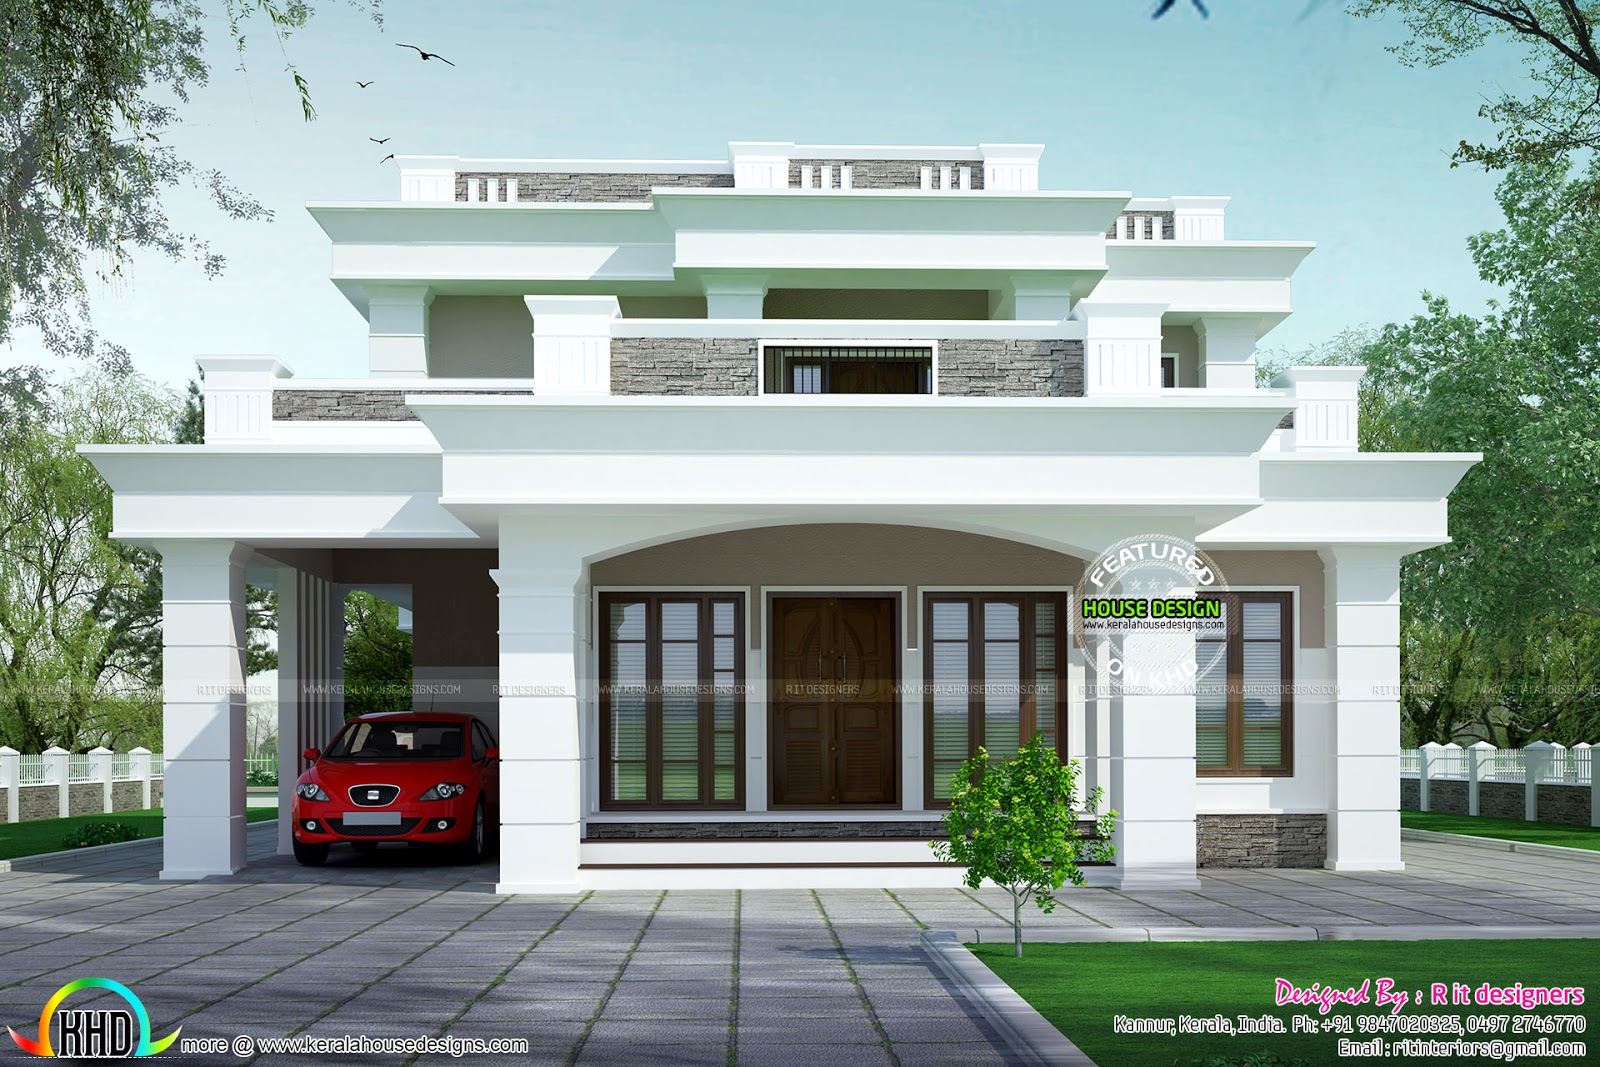 2813 Sq Ft Flat Roof Box Type Home Kerala Home Design And Floor Plans